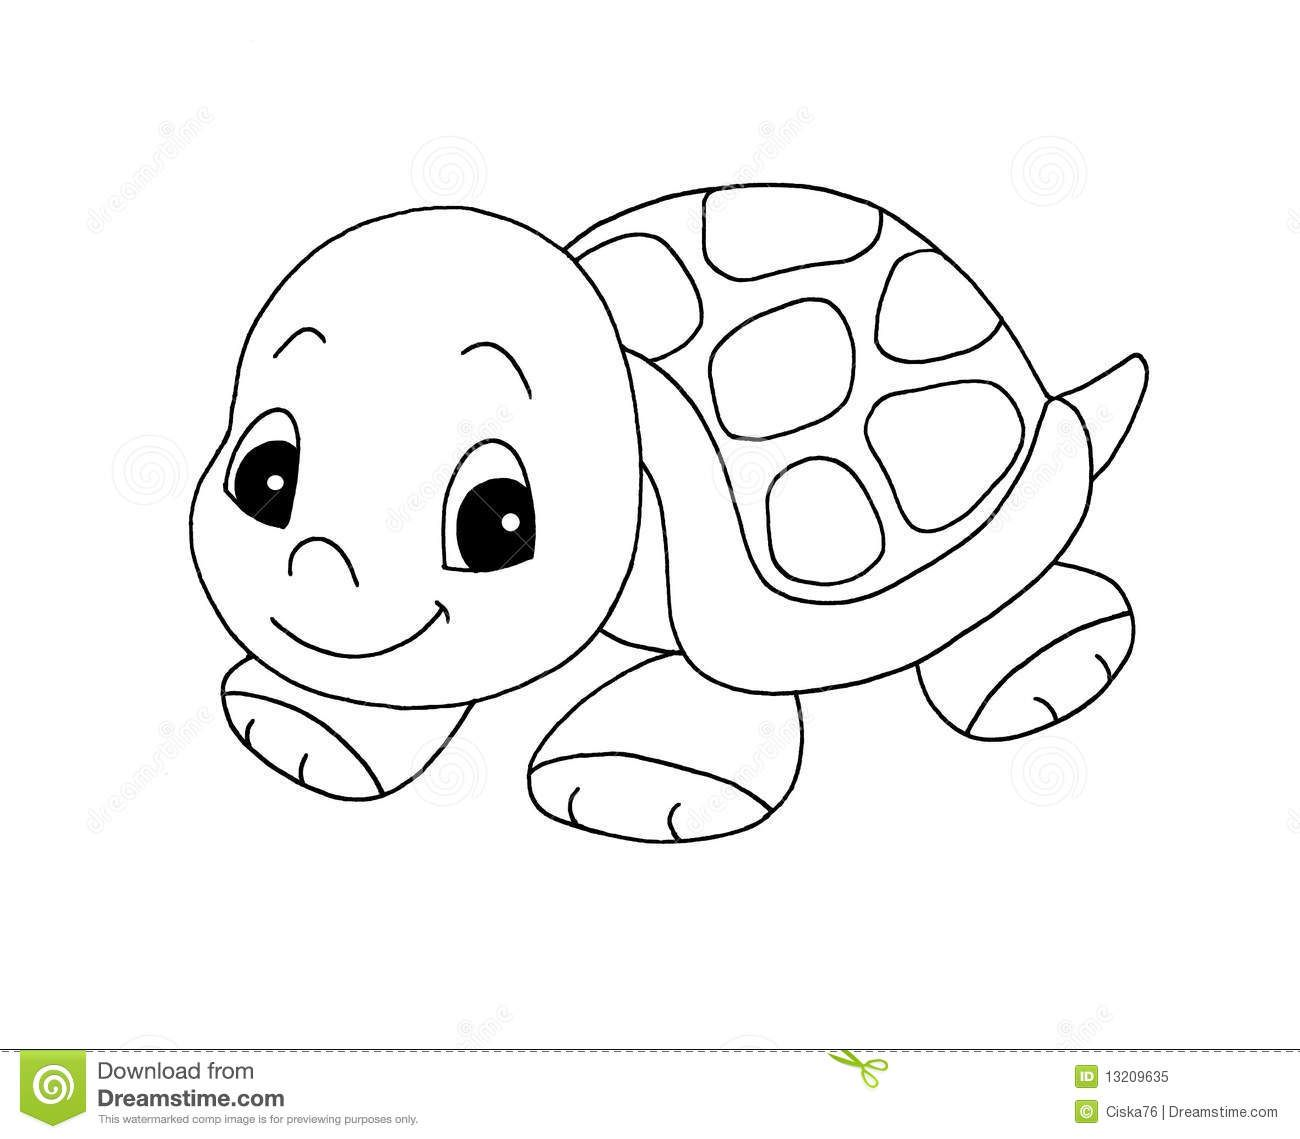 Box Turtles Are How To Draw A Turtle Of A Deer In Description From Notwhileiameating I